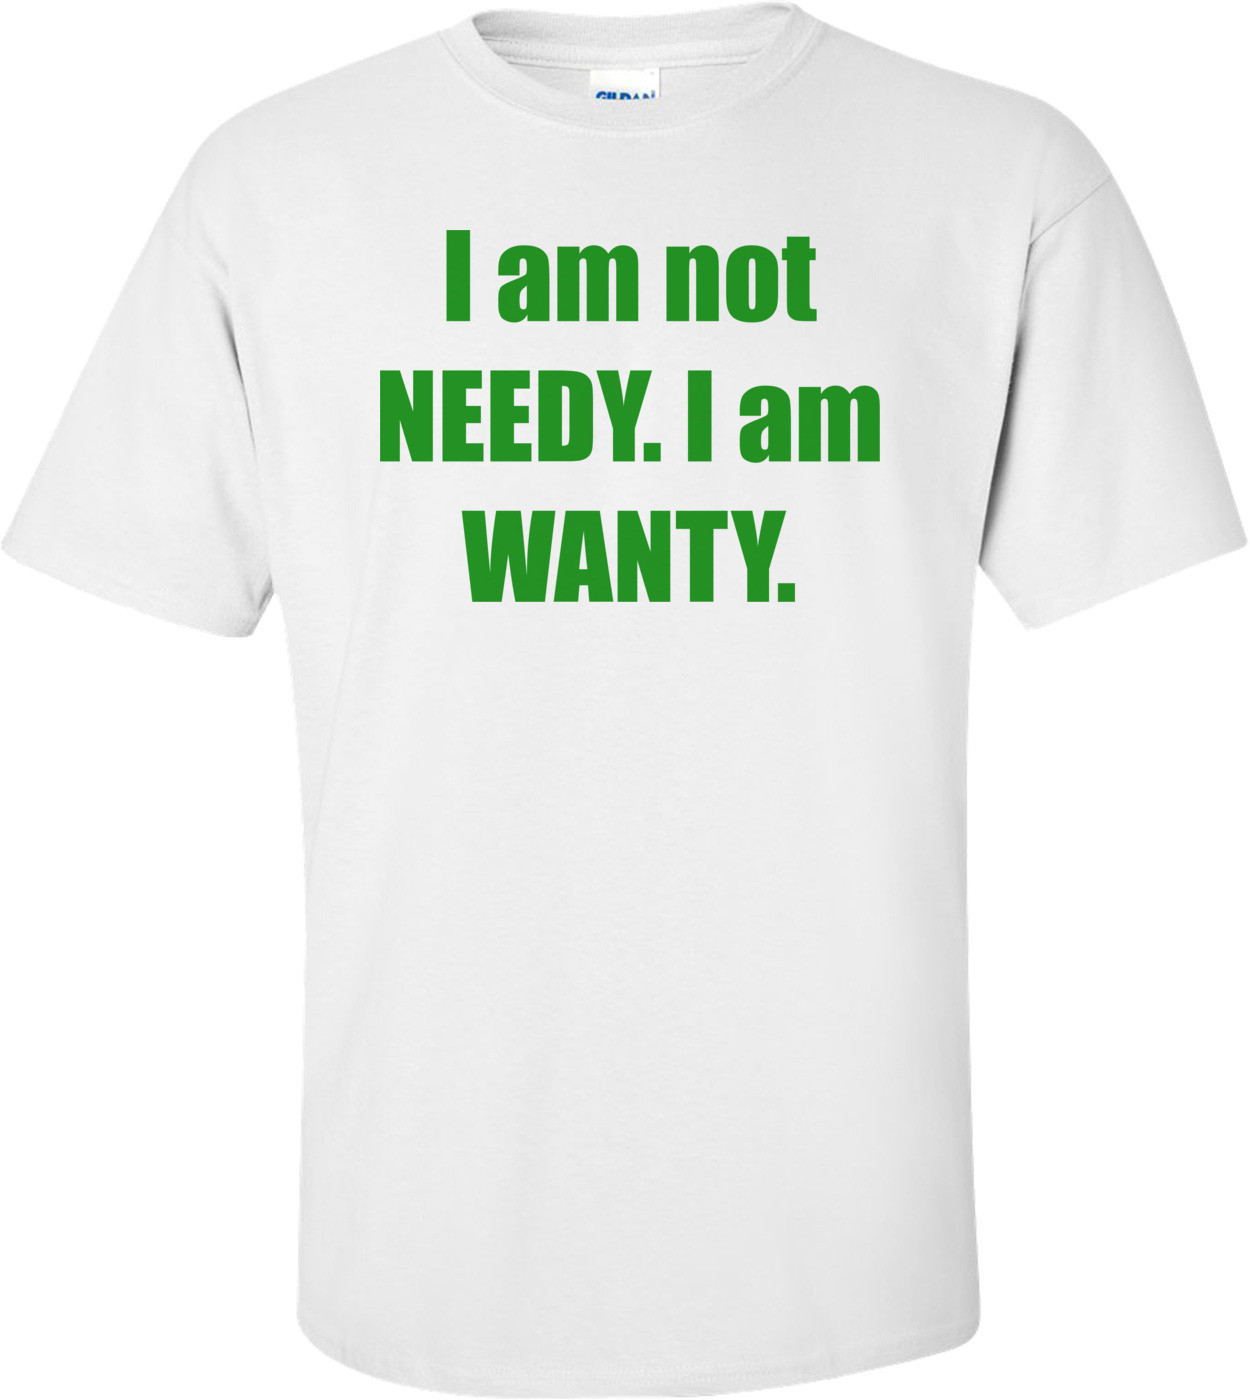 I am not NEEDY. I am WANTY. Shirt